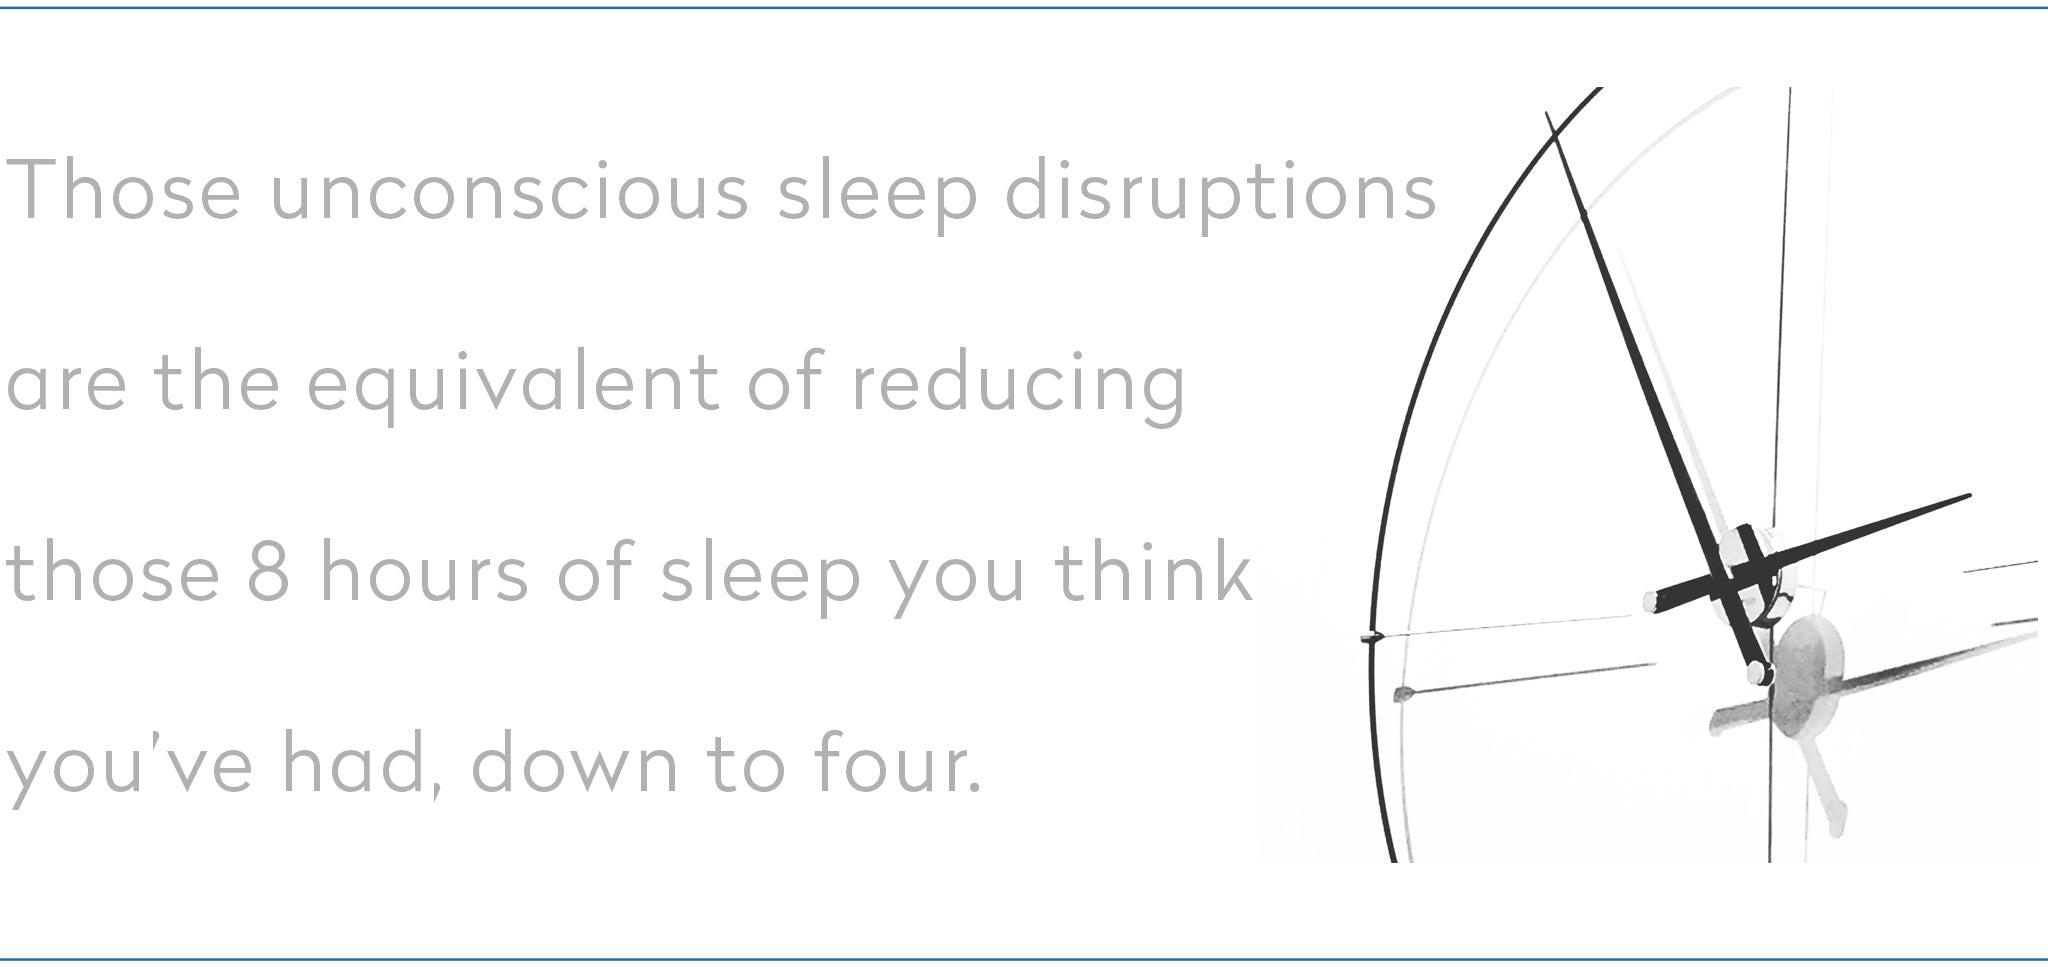 sleep disruptions are the equivalent of reducing 8 hours of sleep down to 4